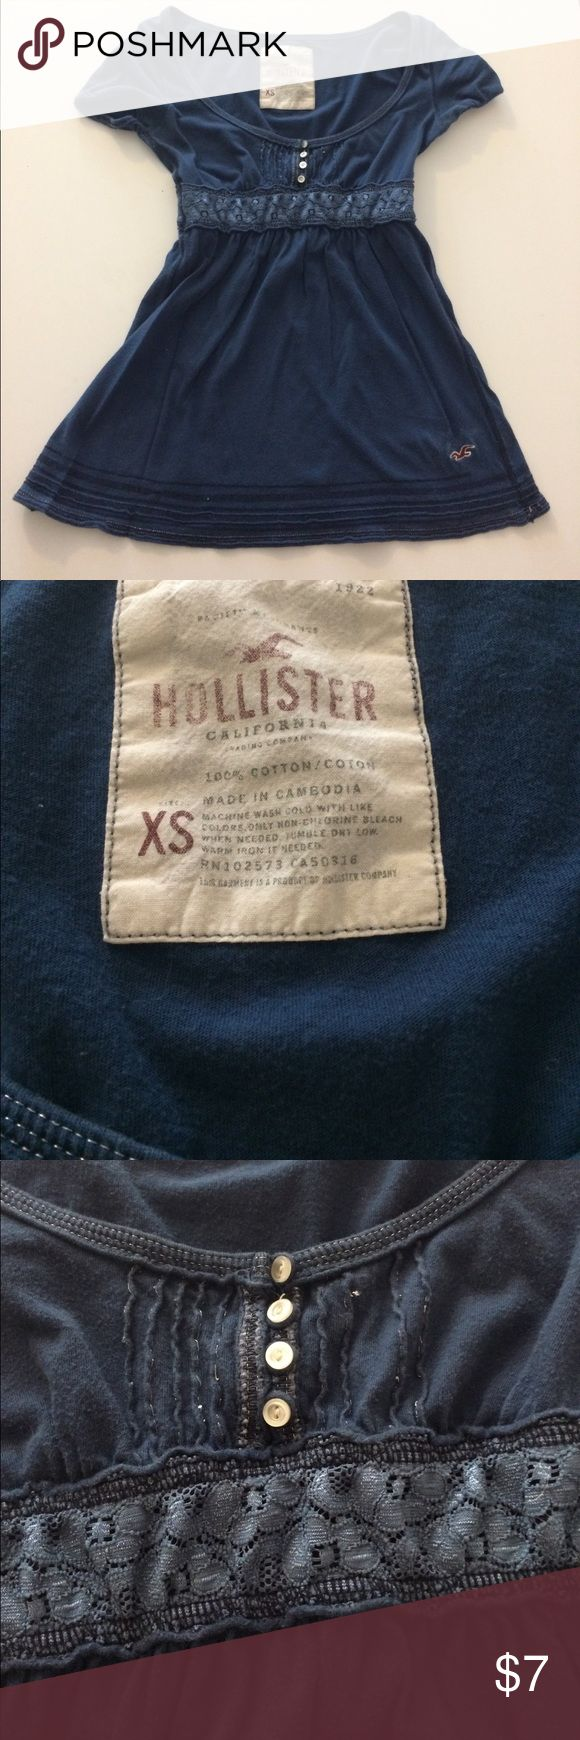 Navy blue Hollister top with lace Used Hollister top with lace. Tight  short sleeves. Cut lower in the front but looks great with a tank top under. Hollister Tops Blouses